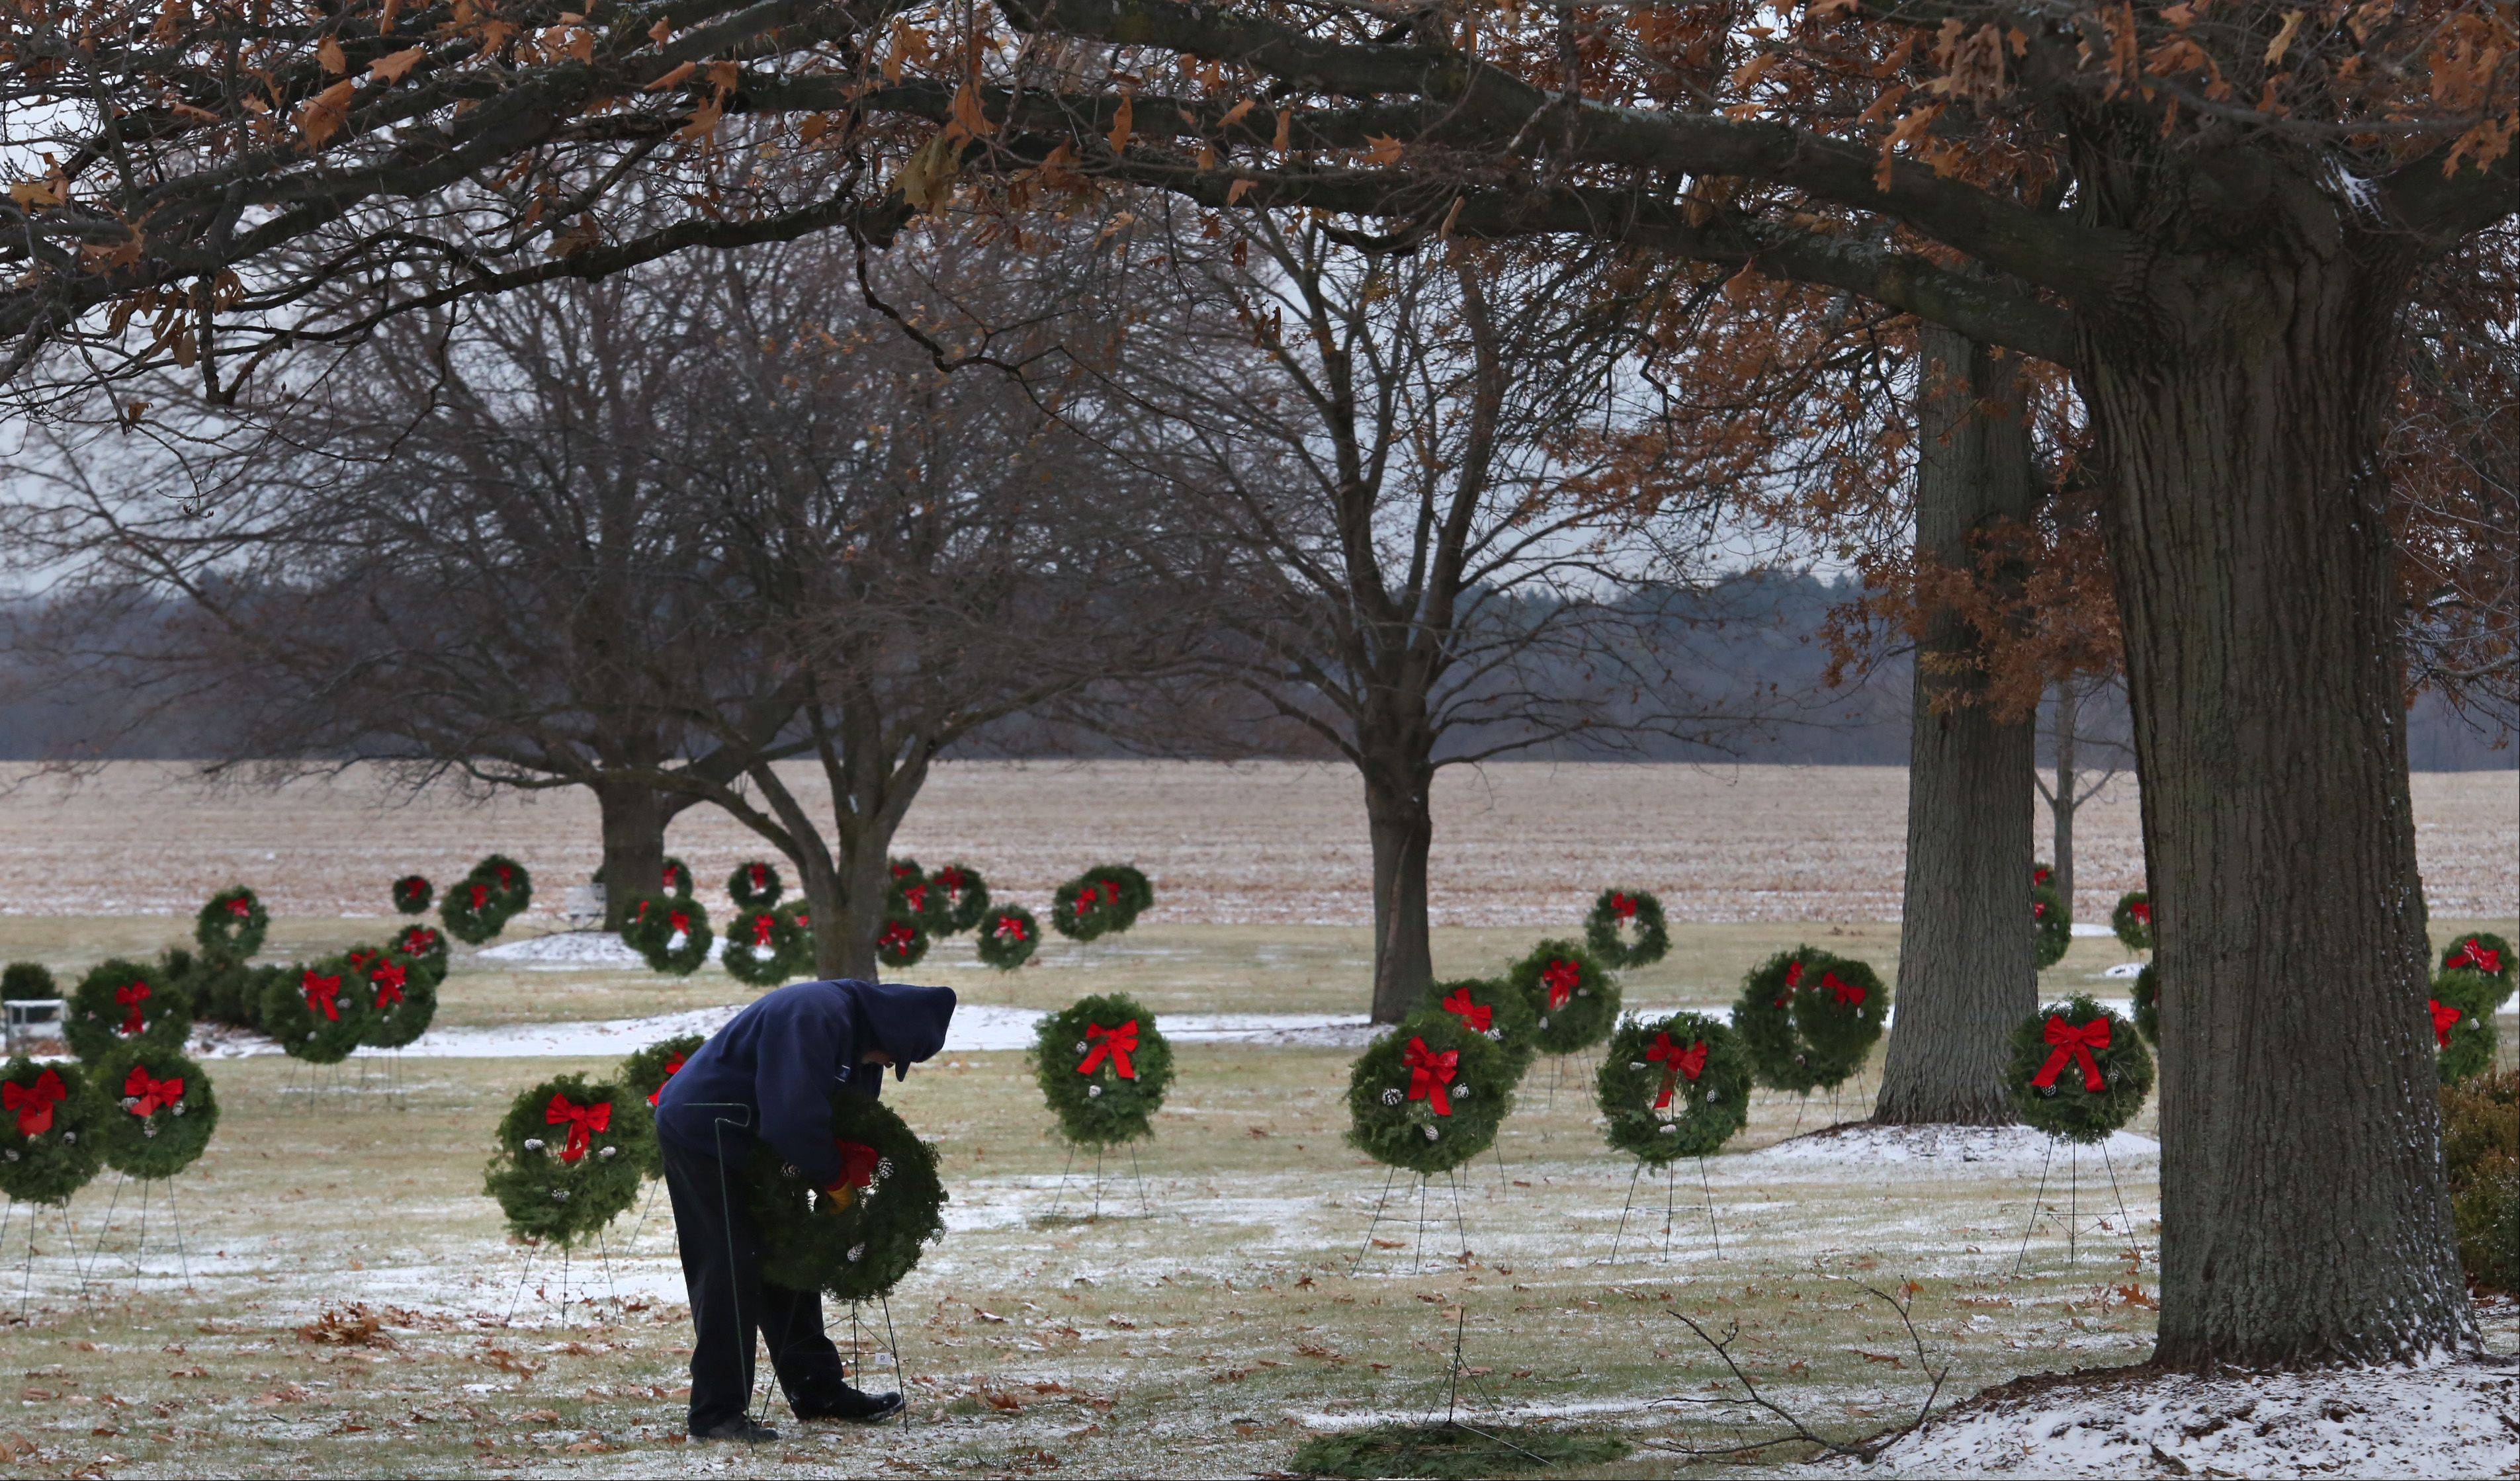 Jim Erboe, a part-time employee at River Valley Memorial Gardens in West Dundee places Christmas wreaths on the graves of veterans buried at the picturesque cemetery.